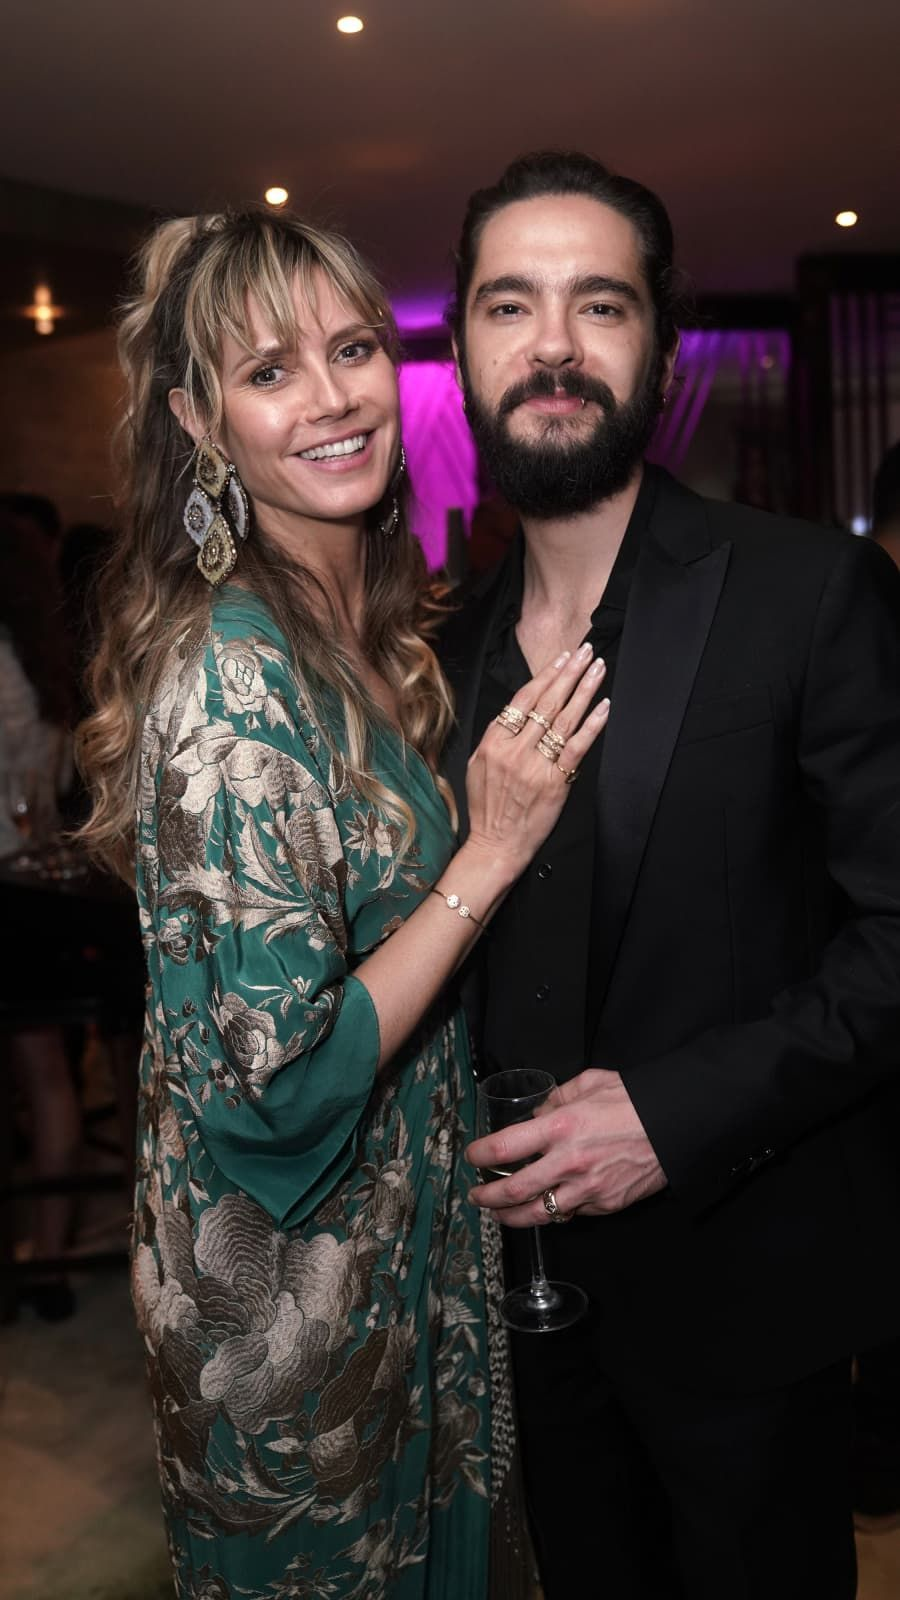 Heidi Klum And Tom Kaulitz Got Engaged At The End Of 2018 And Are Currently In The Middle Of Planning Their Weddin Heidi Klum Heidi Klum S Children Tom Kaulitz